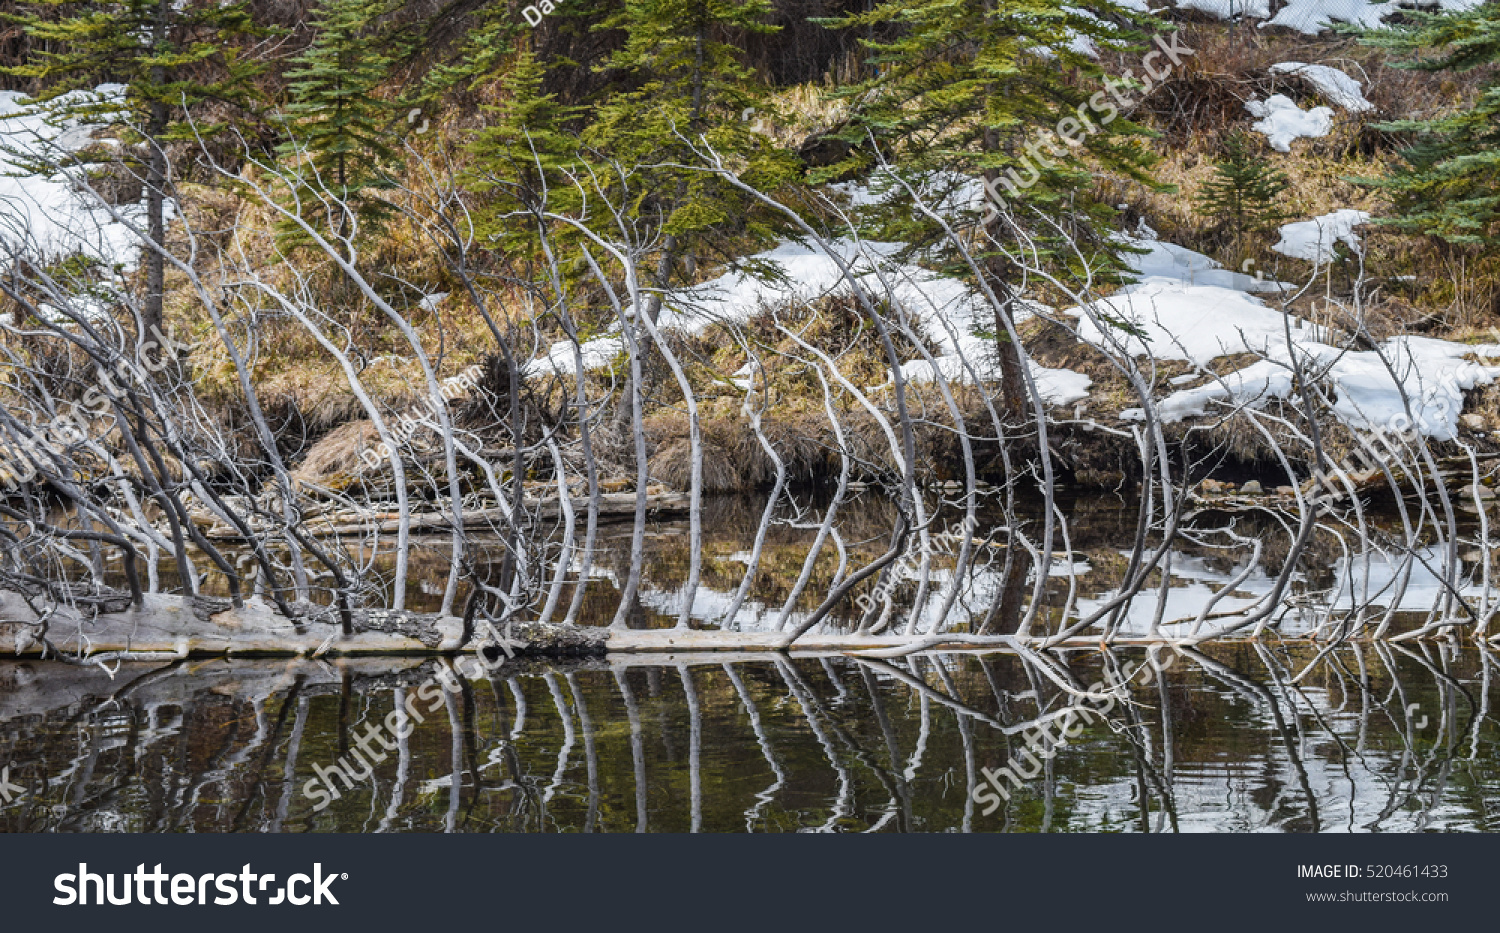 Reflection of branches of a fallen tree on Hallam Lake in Aspen, Colorado, in late winter or early spring, as snow melts from the mountain.